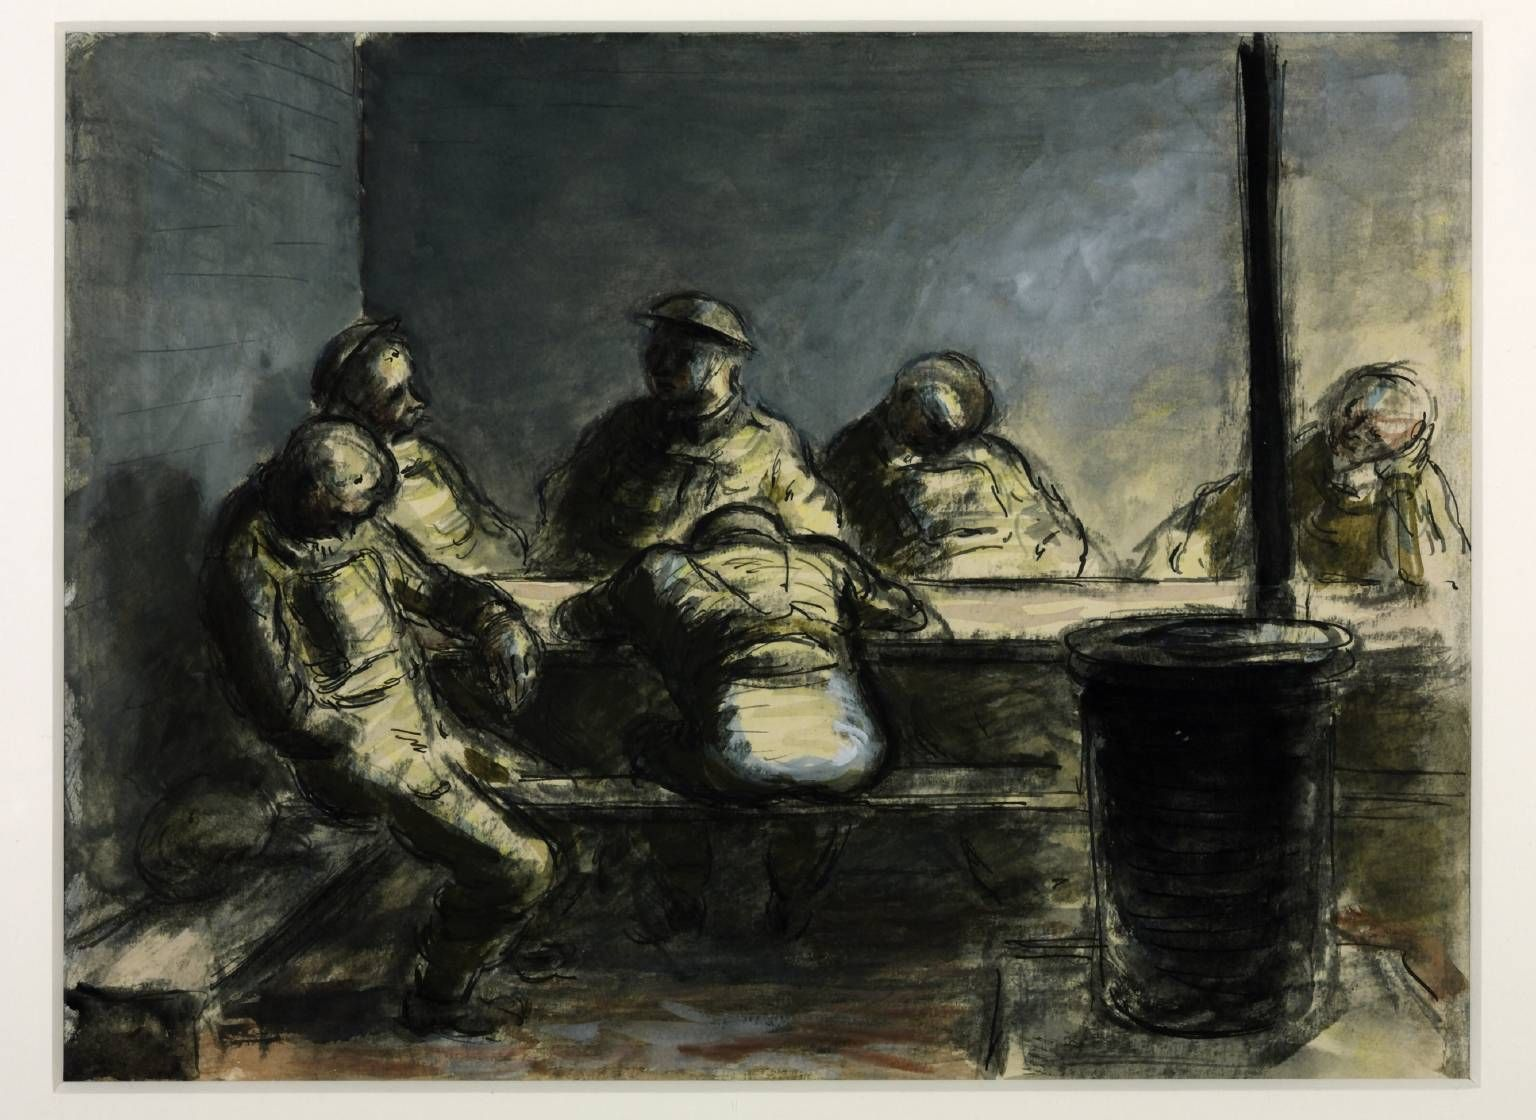 Edward Ardizzone 'On a Fortified Island, the Night Watch', 1941